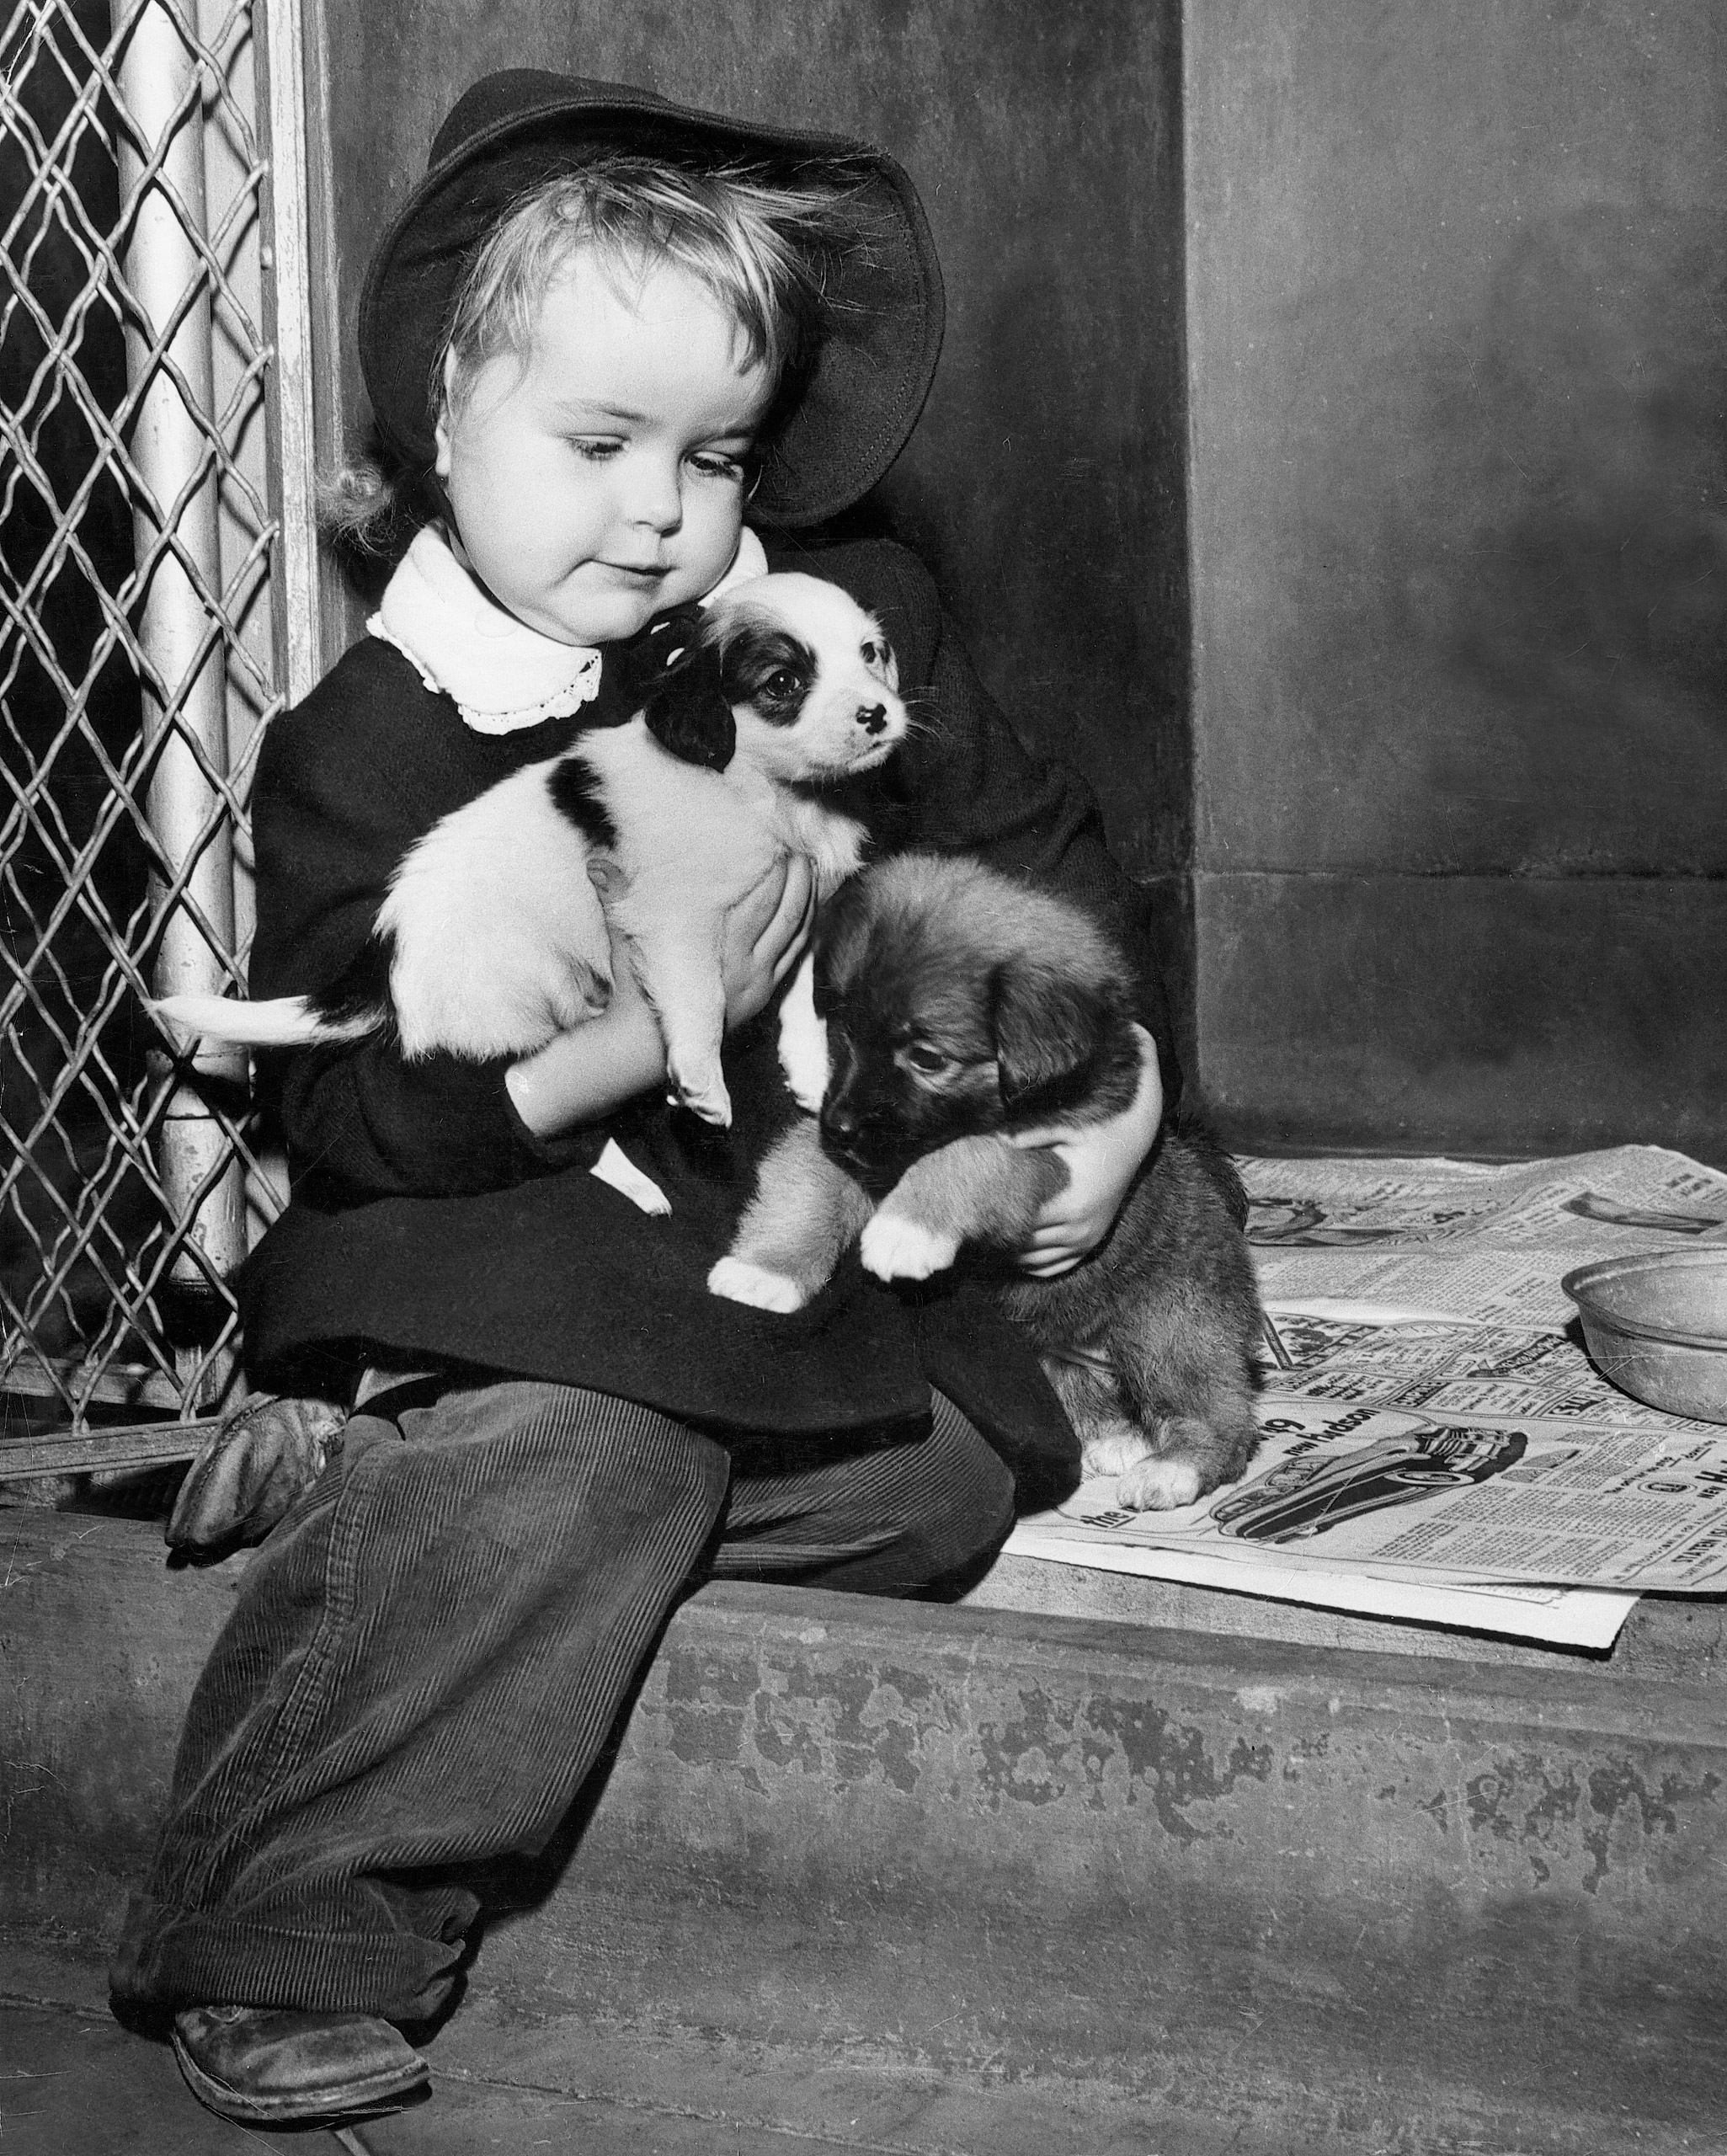 Little girl with ASPCA adoptable puppies, 1948.